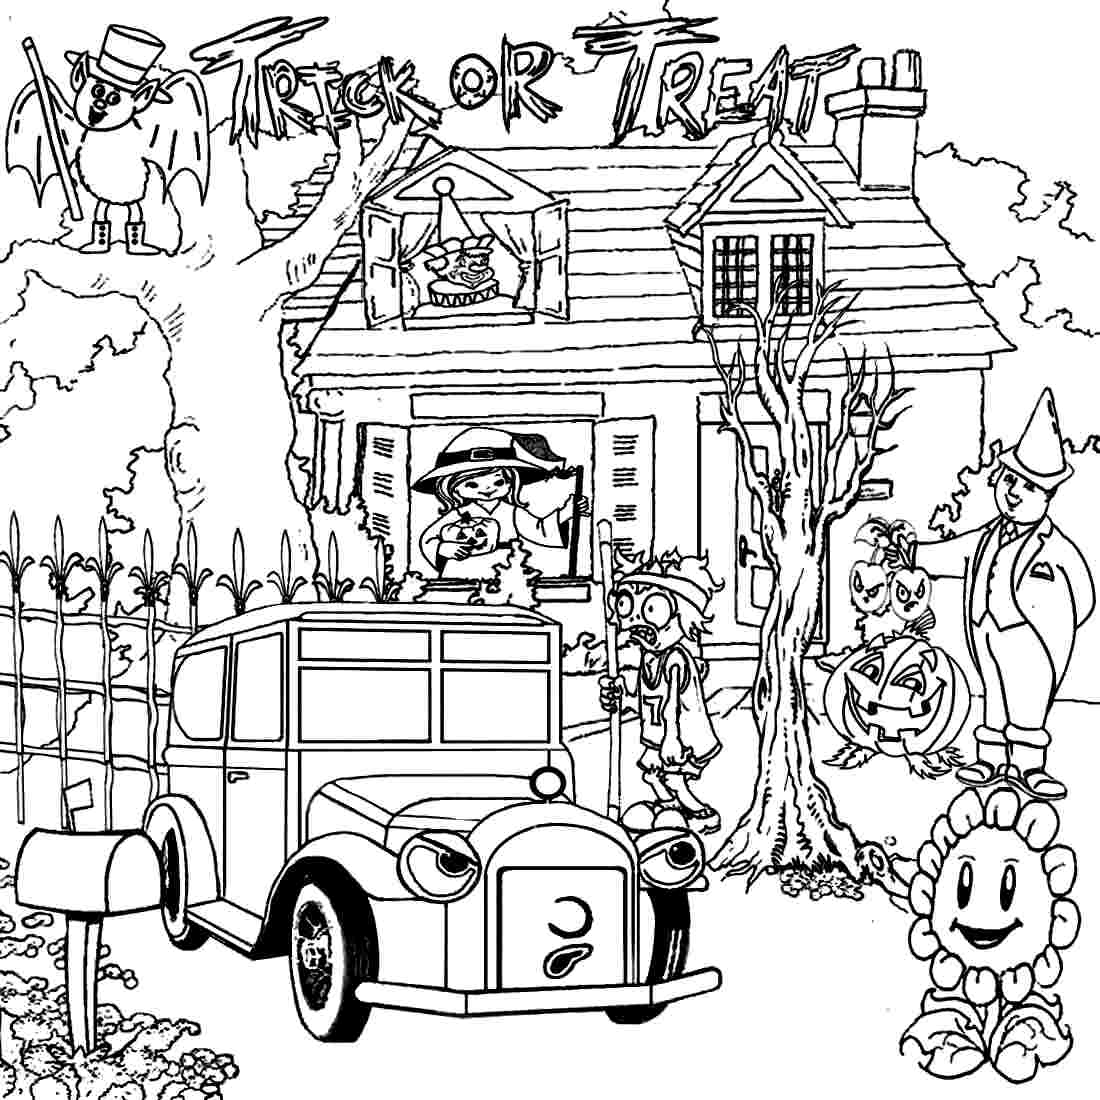 haunted house coloring pages for kids 25 free printable haunted house coloring pages for kids coloring pages haunted house for kids